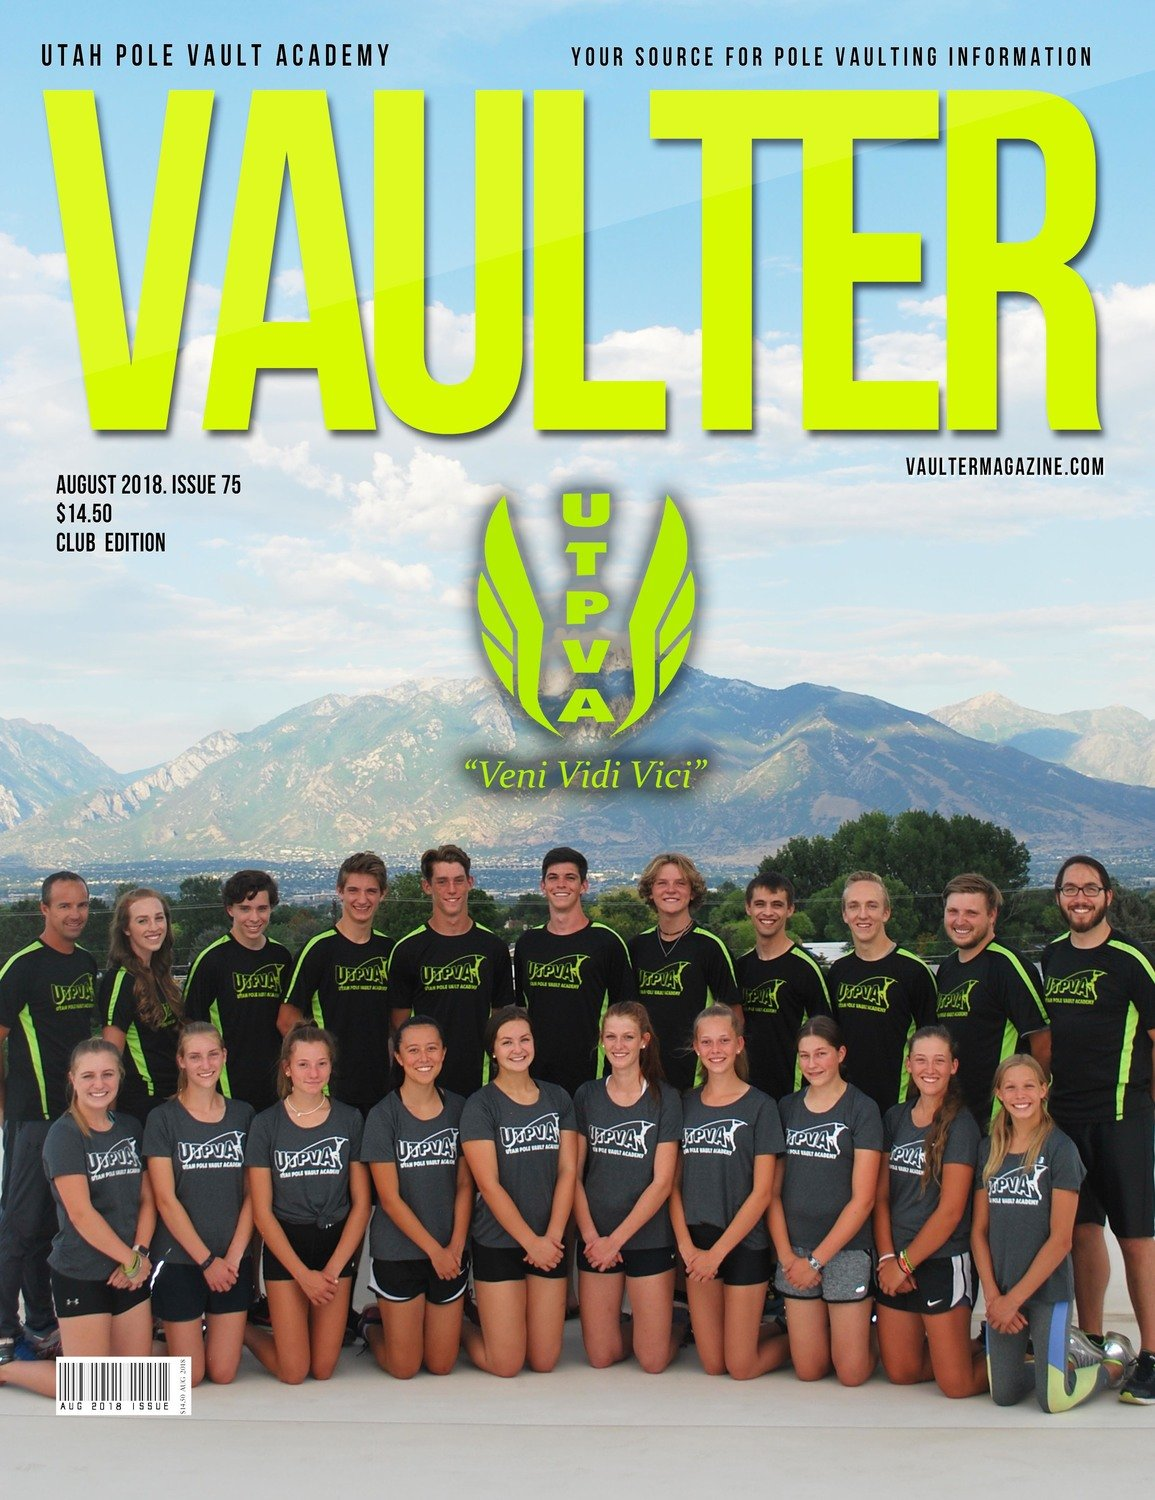 August 2018 Utah Pole Vault Academy Cover of Vaulter Magazine Issue of Vaulter Magazine Cover Issue of Vaulter Magazine Digital Download